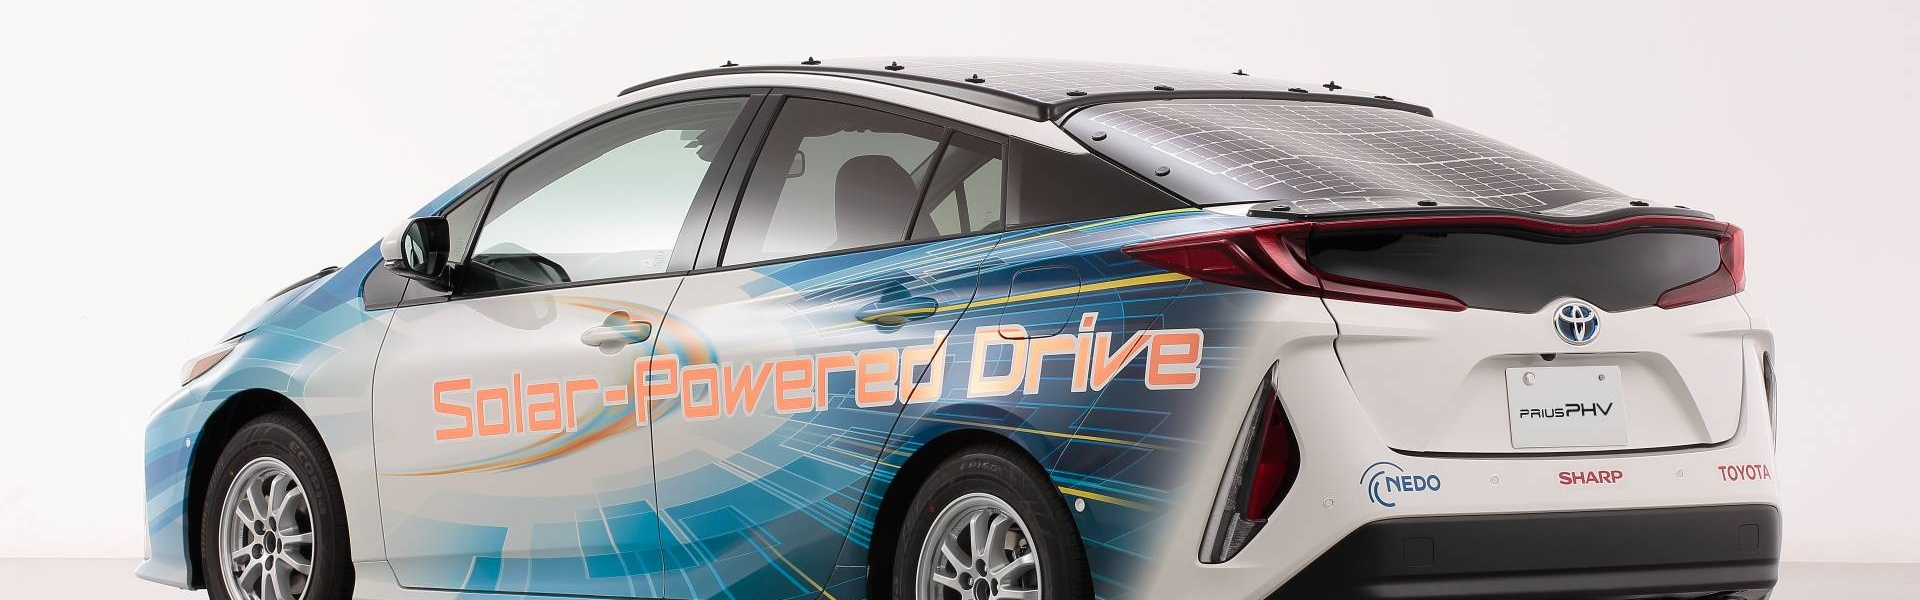 toyota-prius-phv-demo-car-with-solar-panels-7.jpg